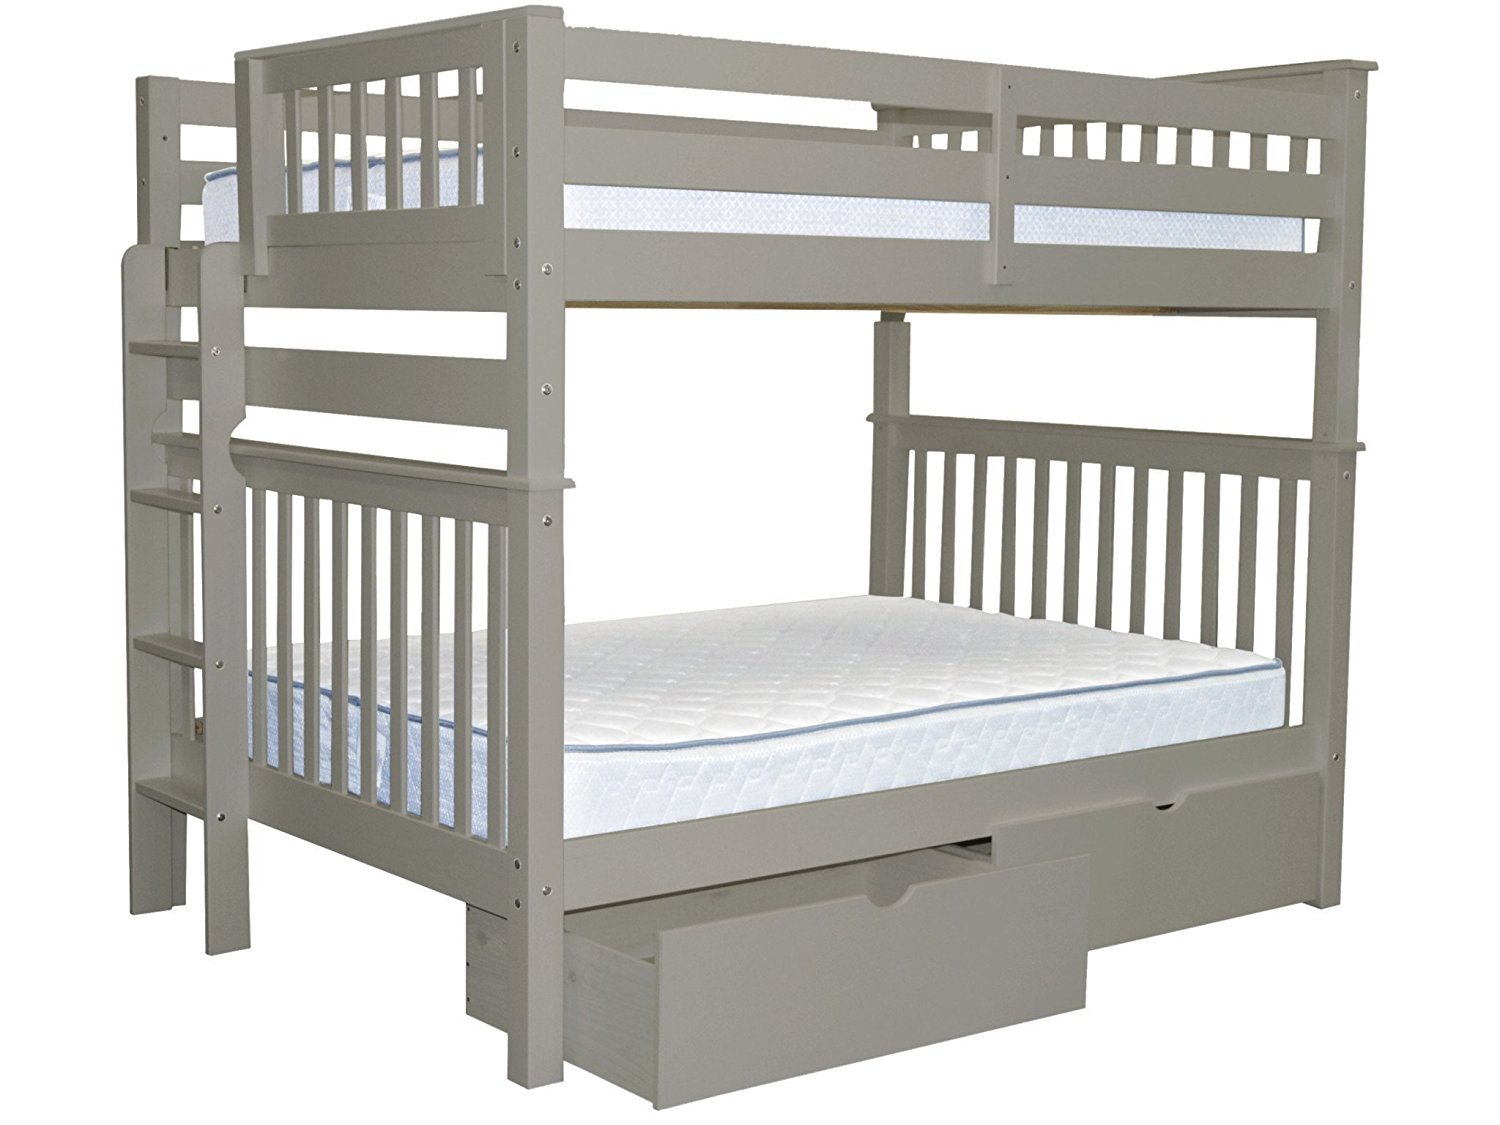 Bedz King Bunk Beds Full Over Full Mission Style With End Ladder And 2 Under Bed Drawers, Gray by Bedz King